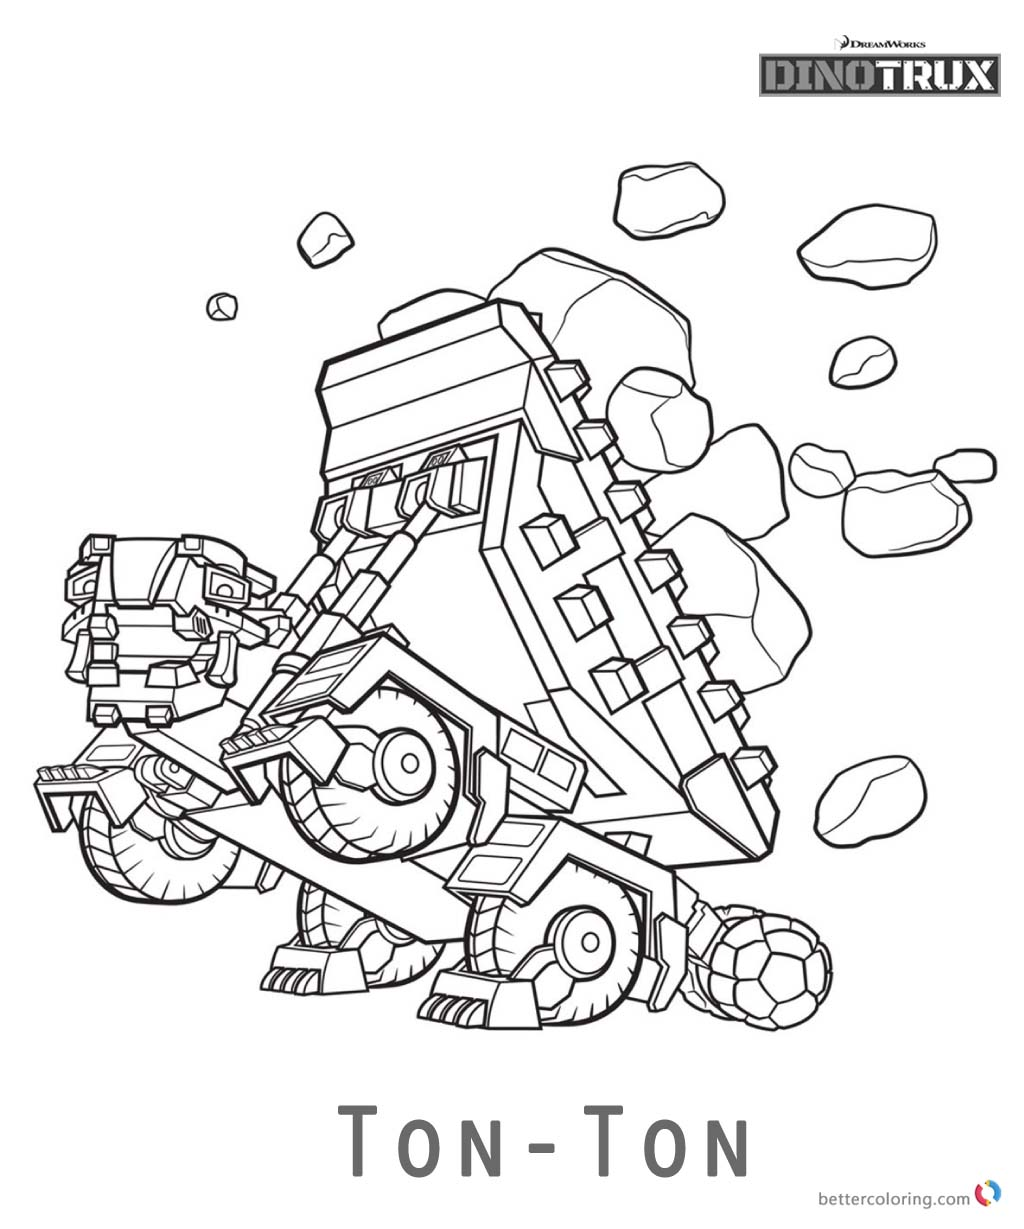 Printable Dinotrux Coloring Pages Sketch Coloring Page